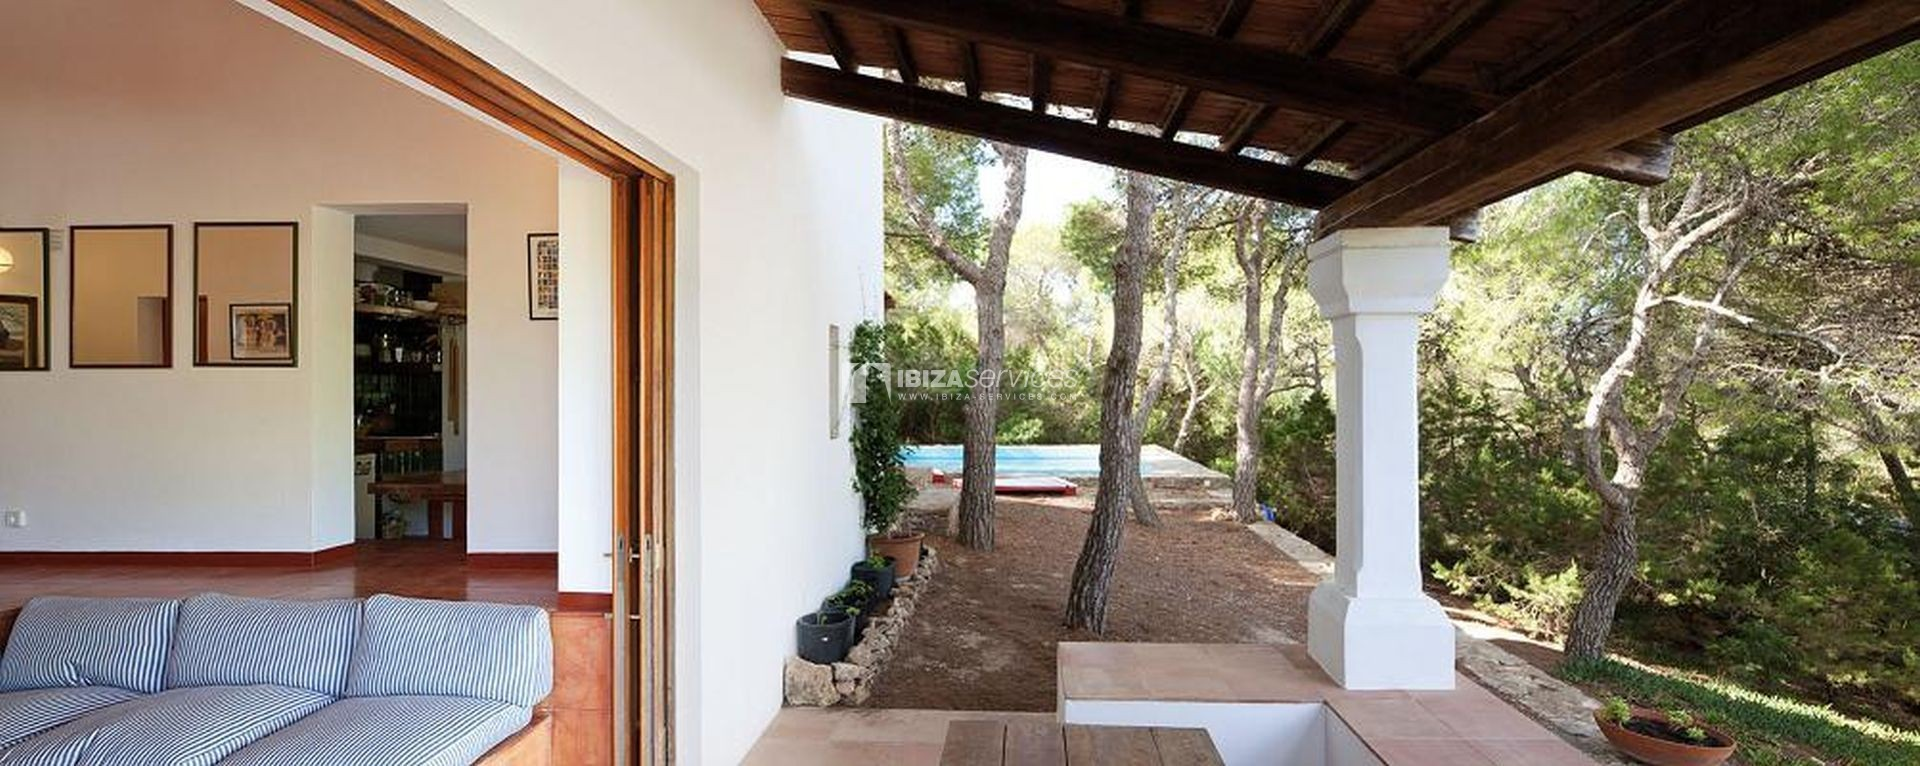 Rustic villa for sale in Formentera perspectiva 30